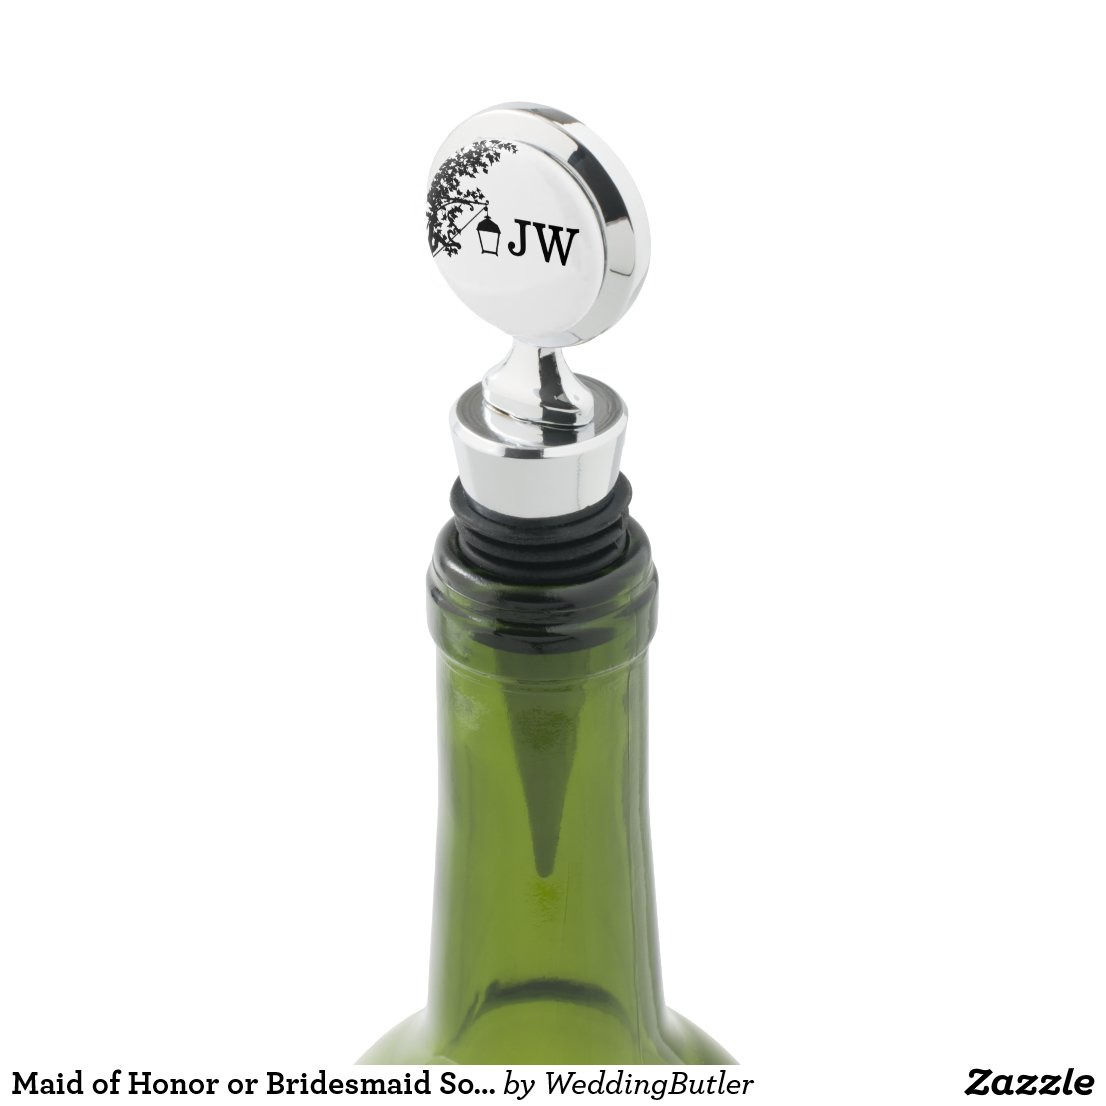 Maid of Honor or Bridesmaid Souvenir Wine Stopper